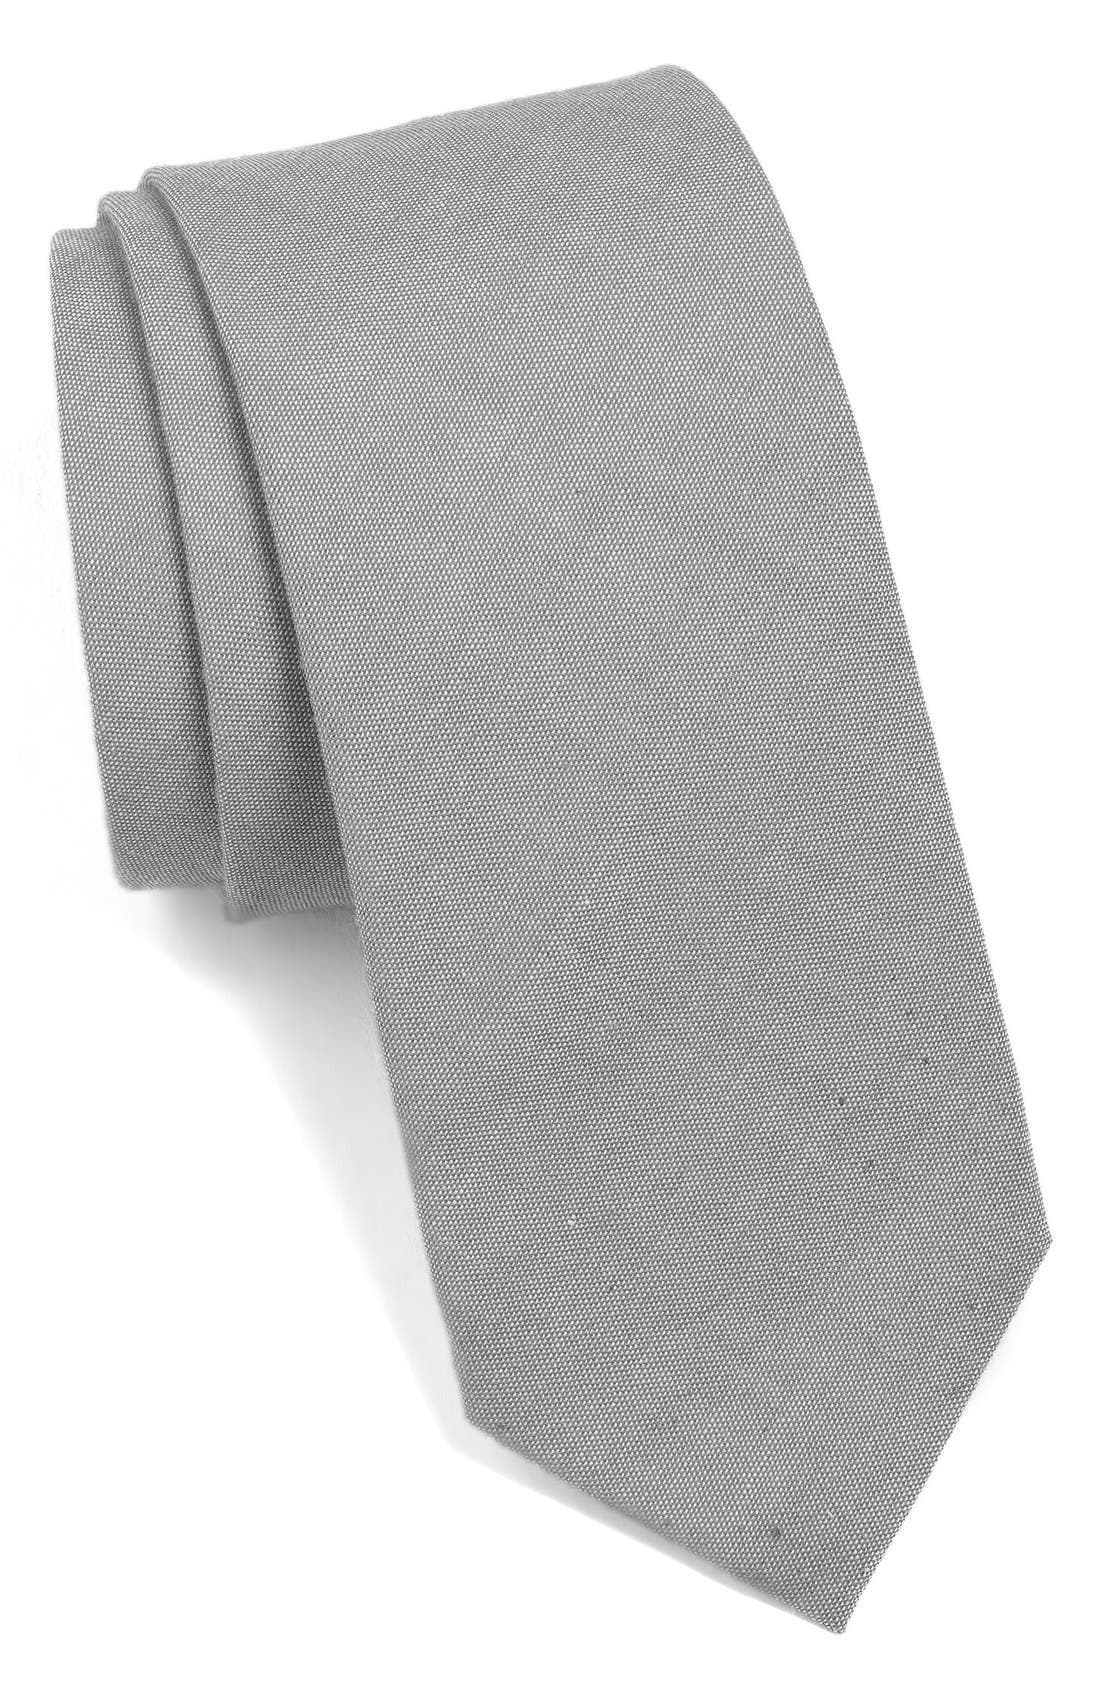 Alternate Image 1 Selected - 1901 Woven Cotton Tie